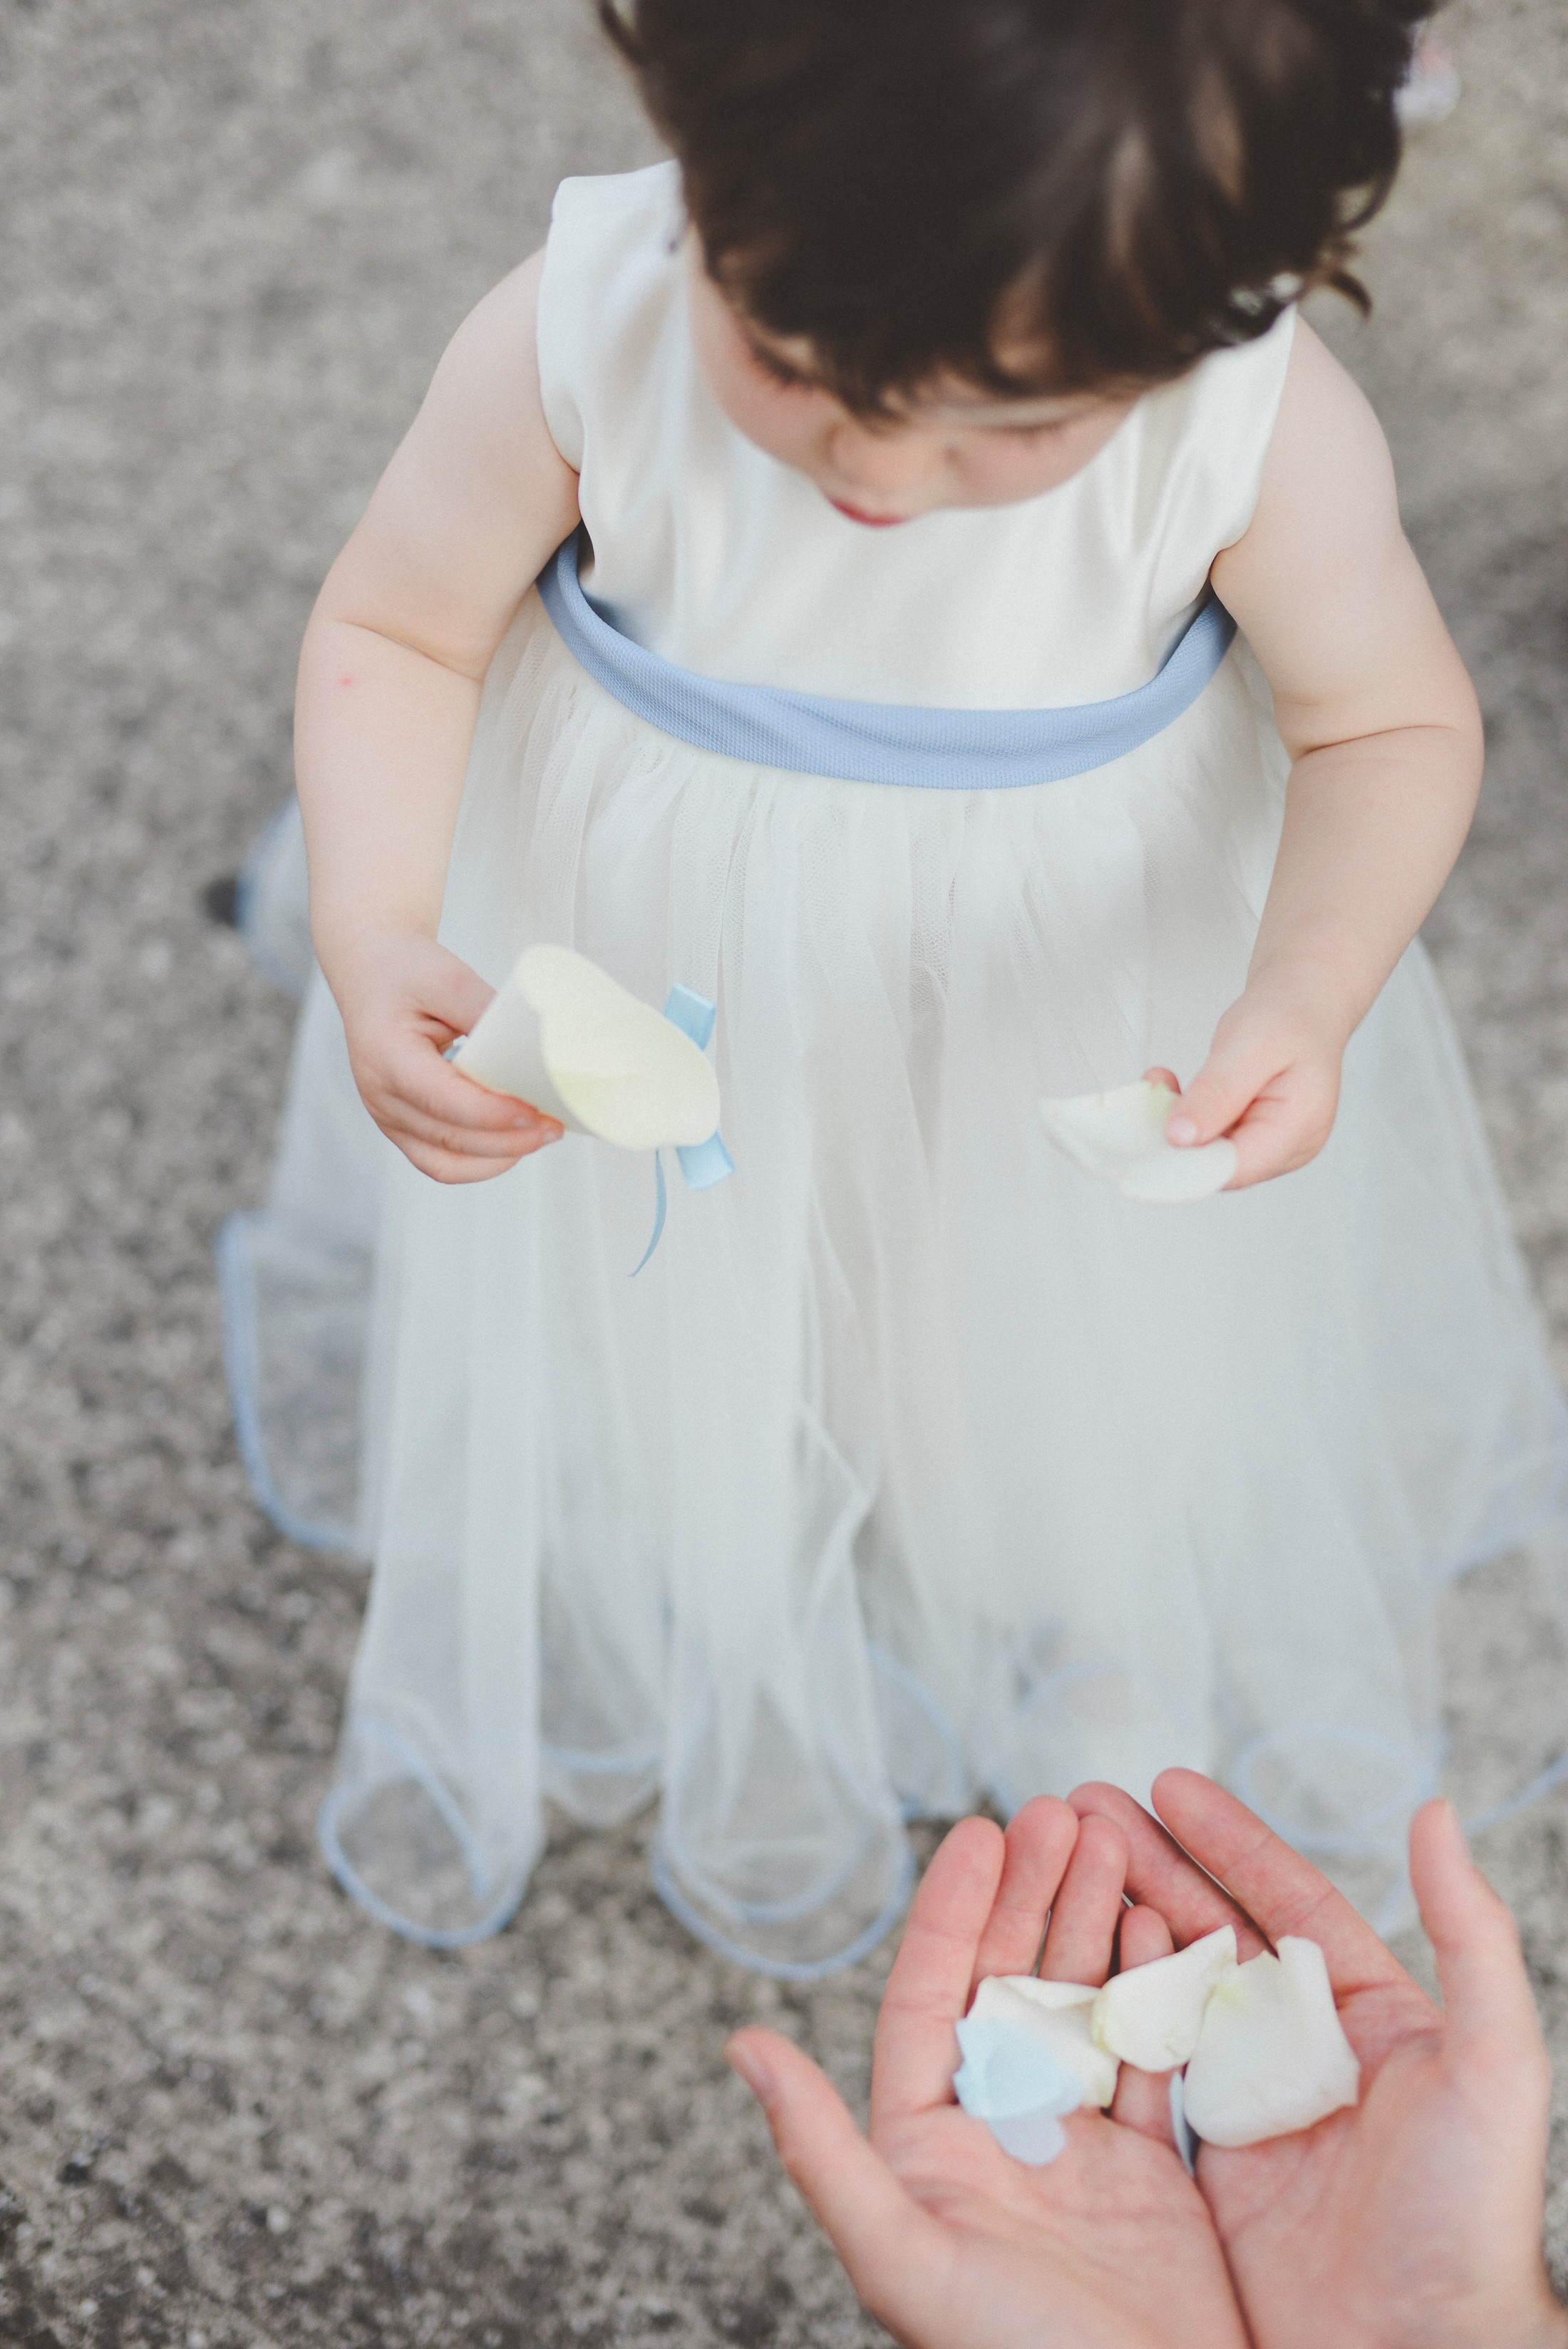 adriana alfano the flower girl takes some petals from two hands